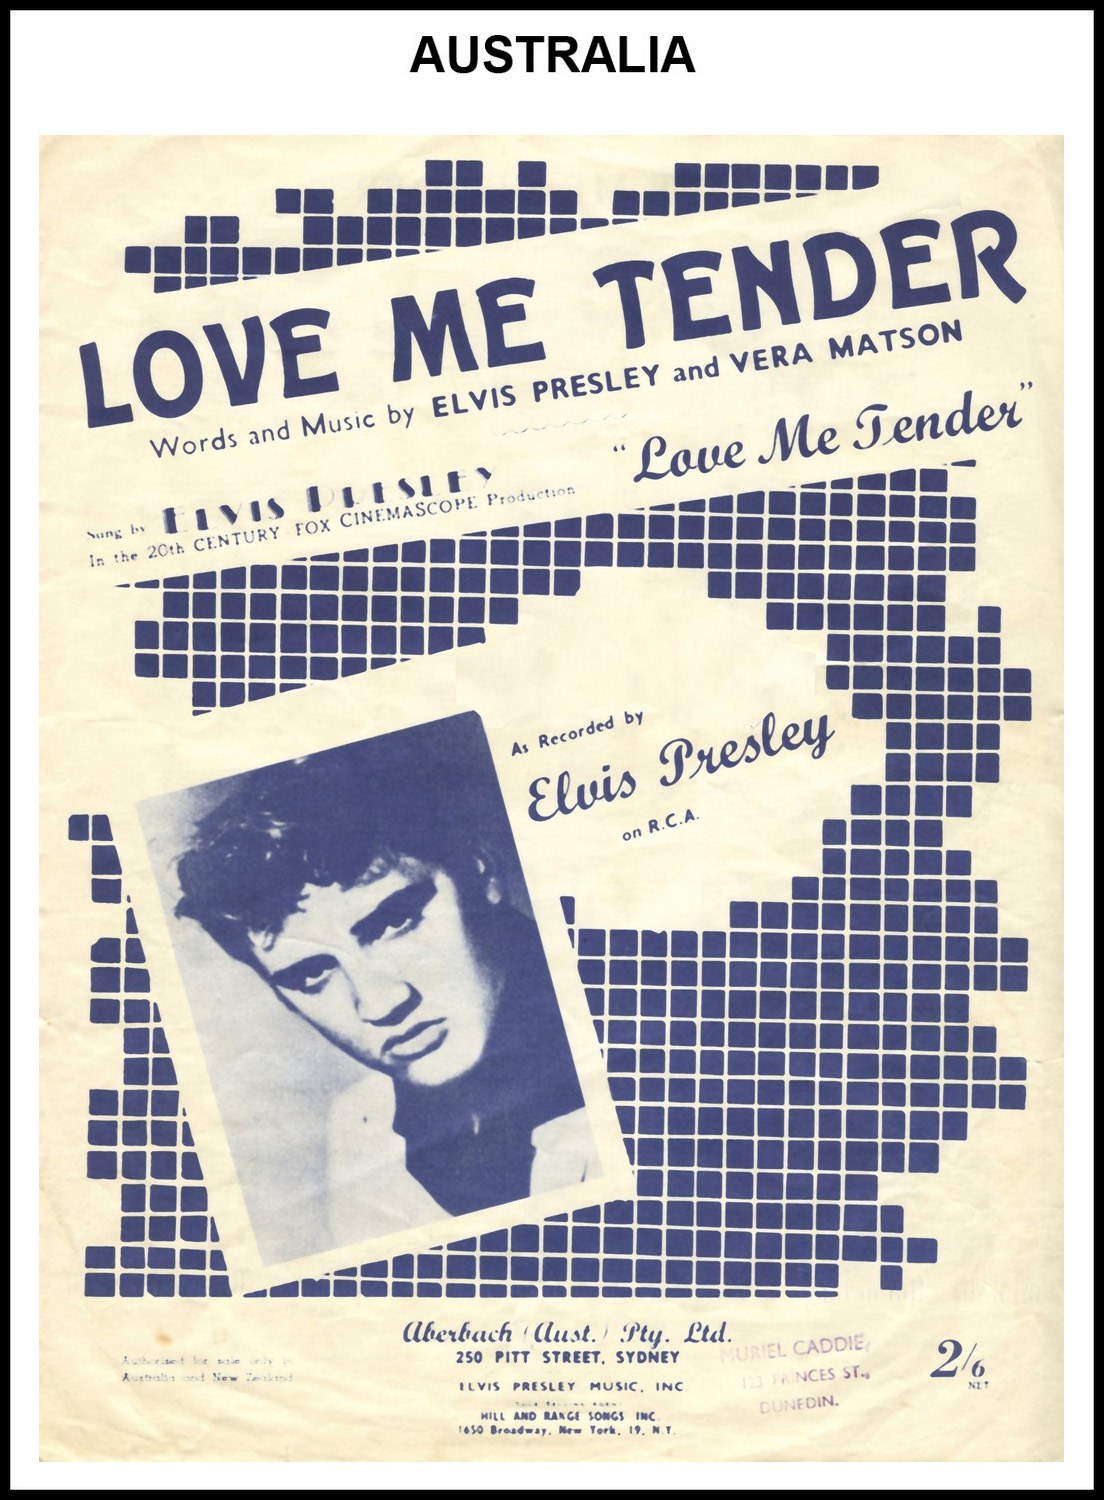 1956 - Love Me Tender (Australia) 1 (CHRIS GILES COLLECTION)